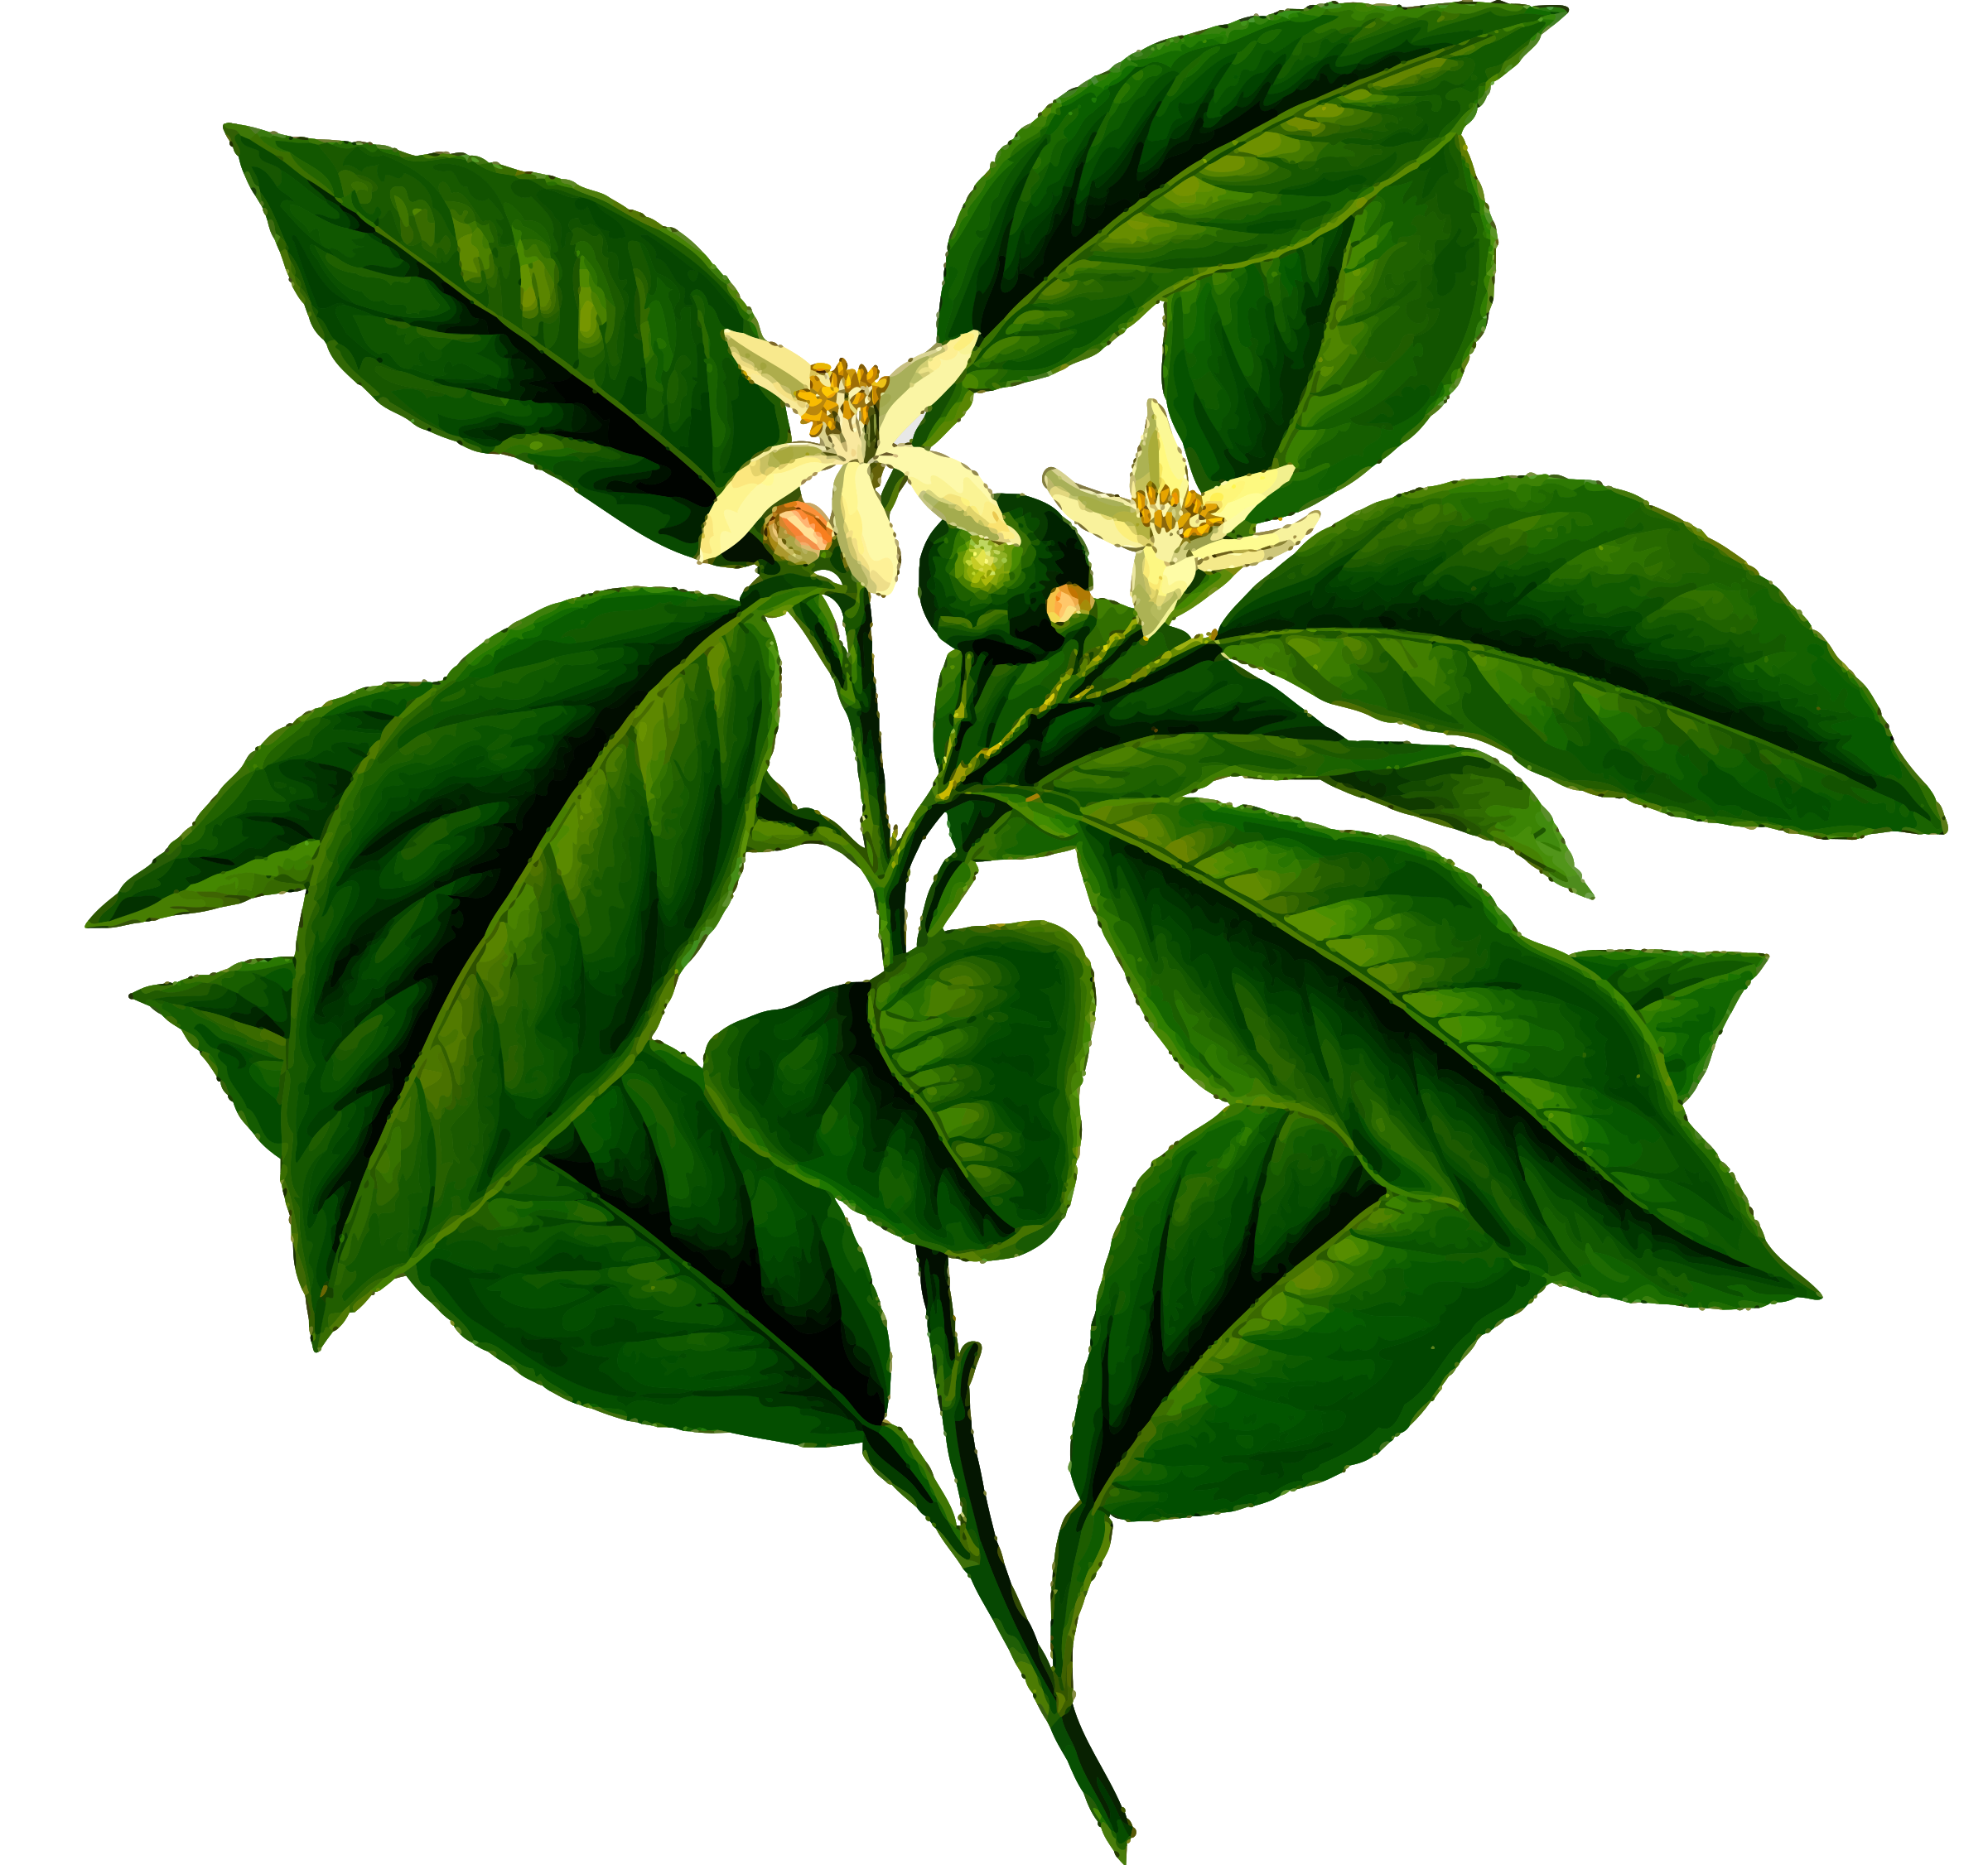 Lemon tree (detailed) by Firkin